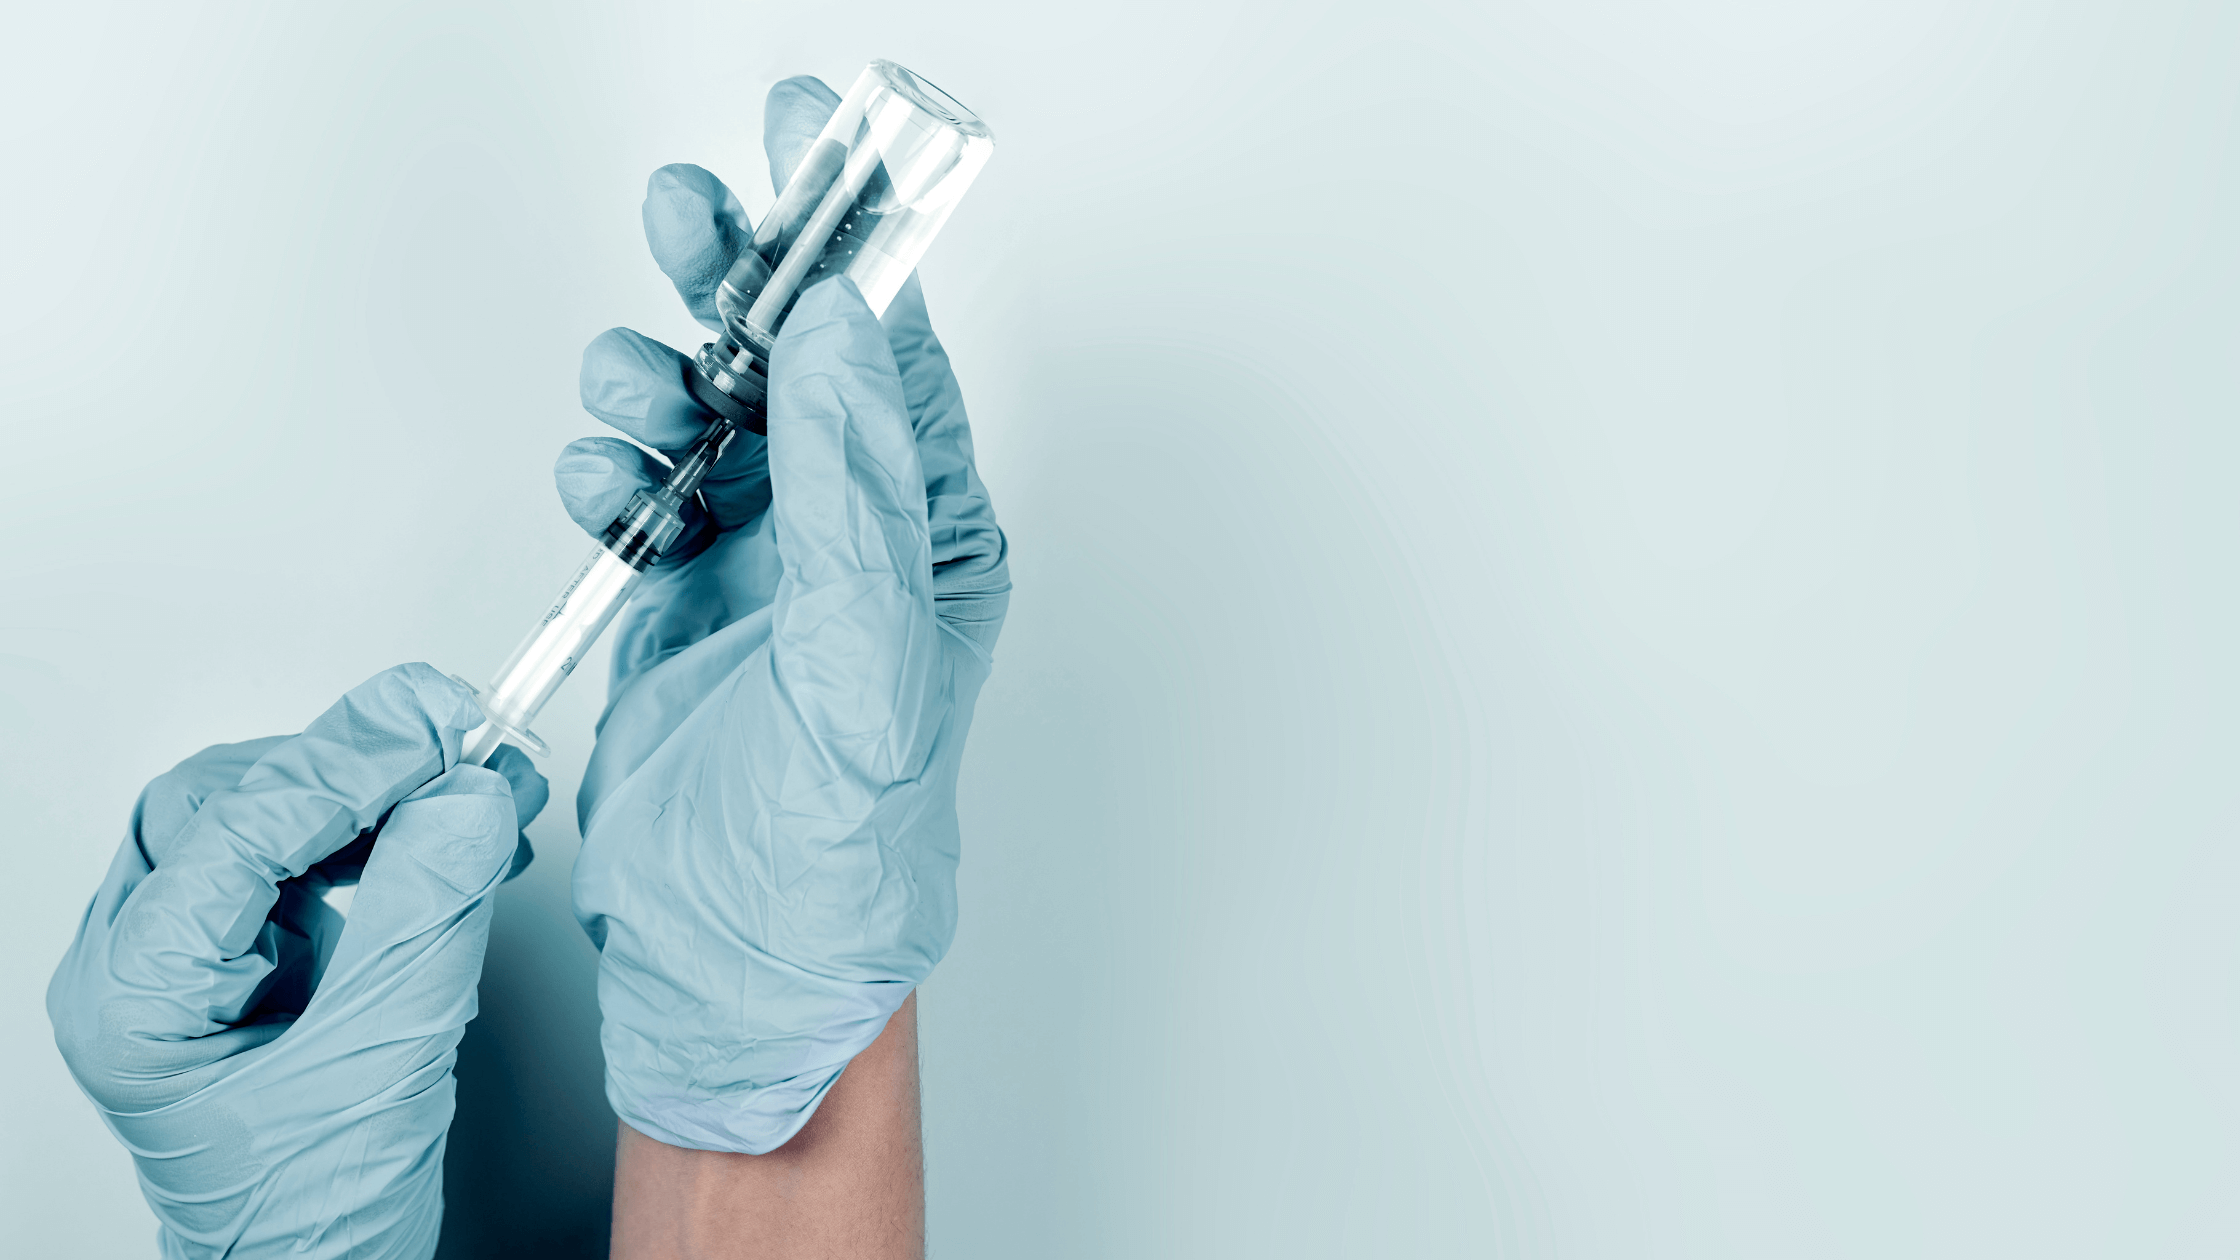 The Dos & Don'ts of Vaccinations